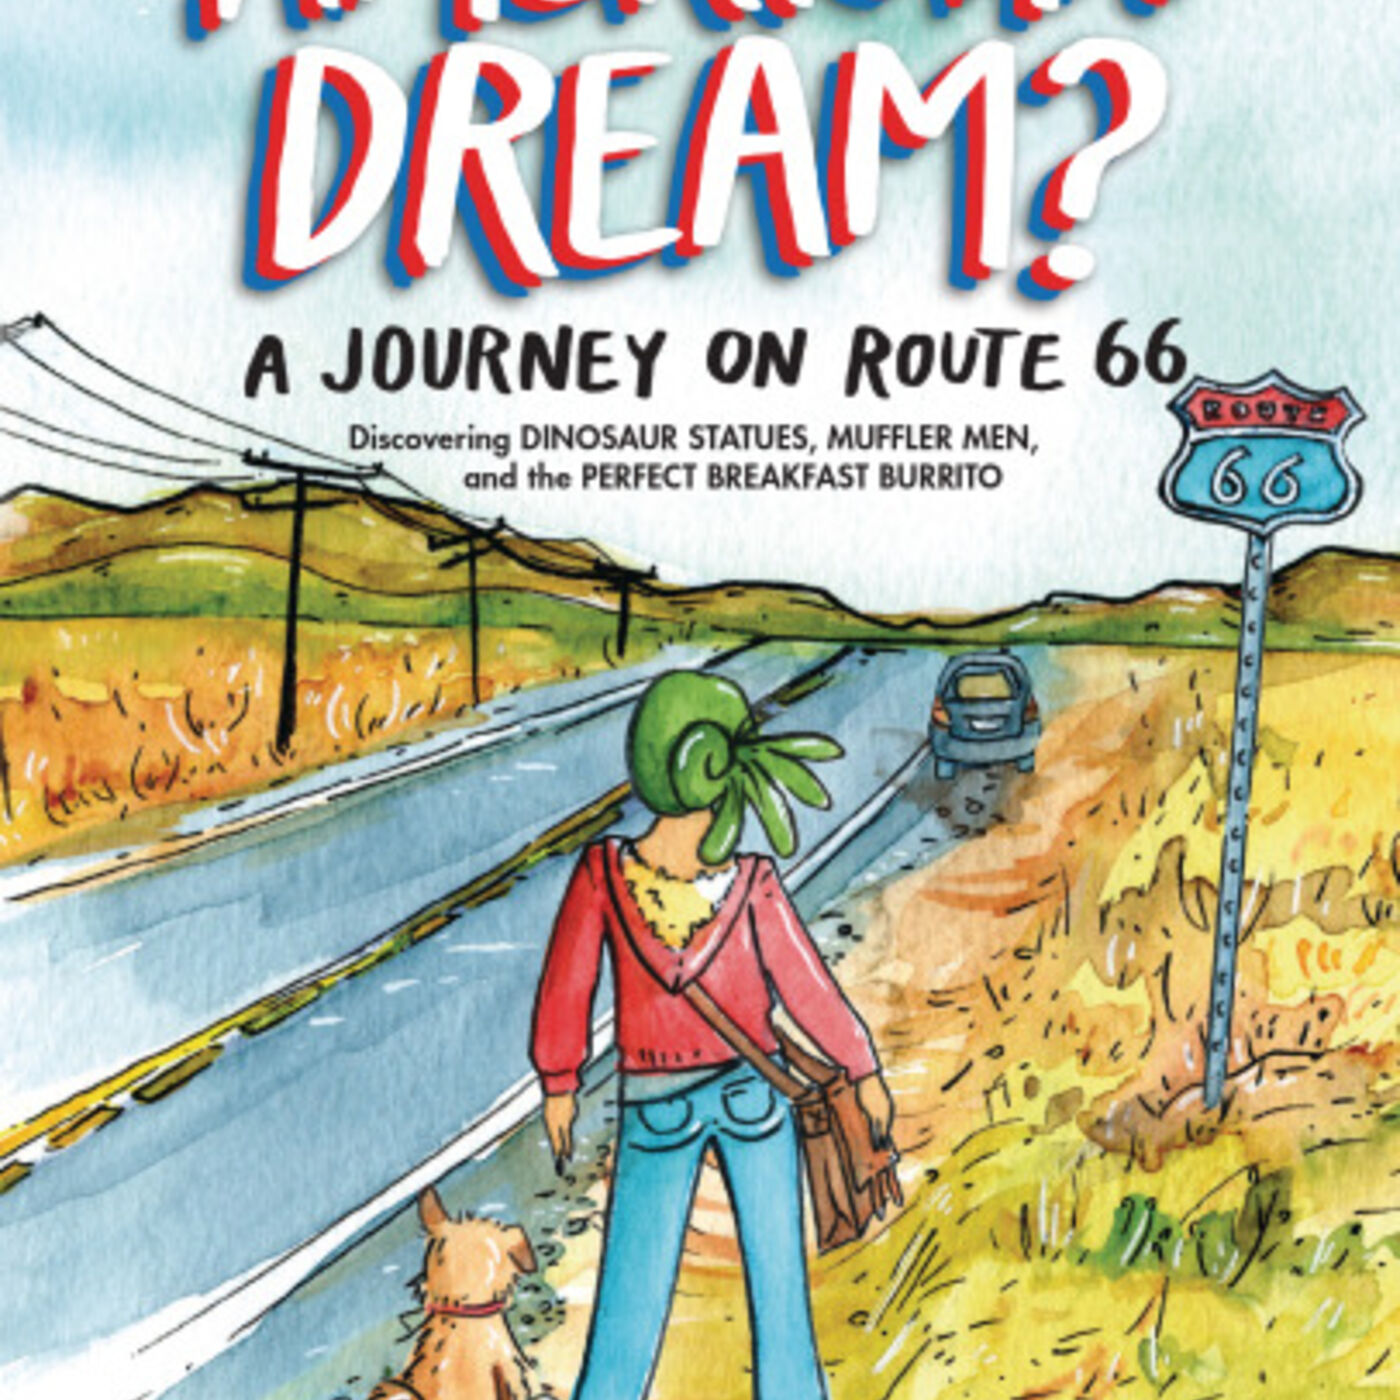 Author Interview: Shing Yin Khor, author of The American Dream? A Journey on Route 66 Discovering Dinosaur Statues, Muffler Men, and the Perfect Breakfast Burrito